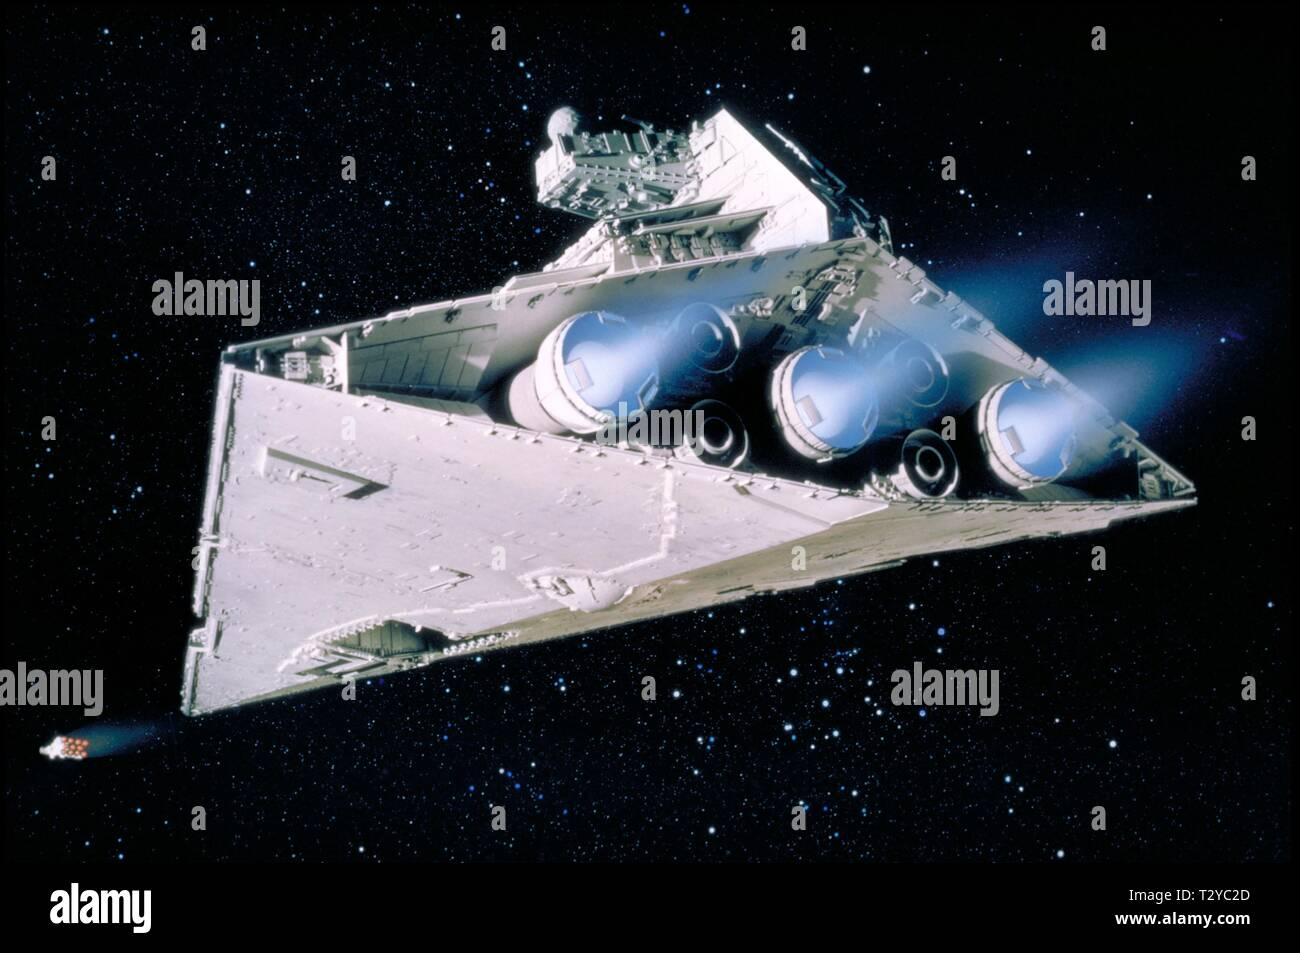 Imperial Destroyer Star Wars Episode Iv A New Hope 1977 Stock Photo Alamy